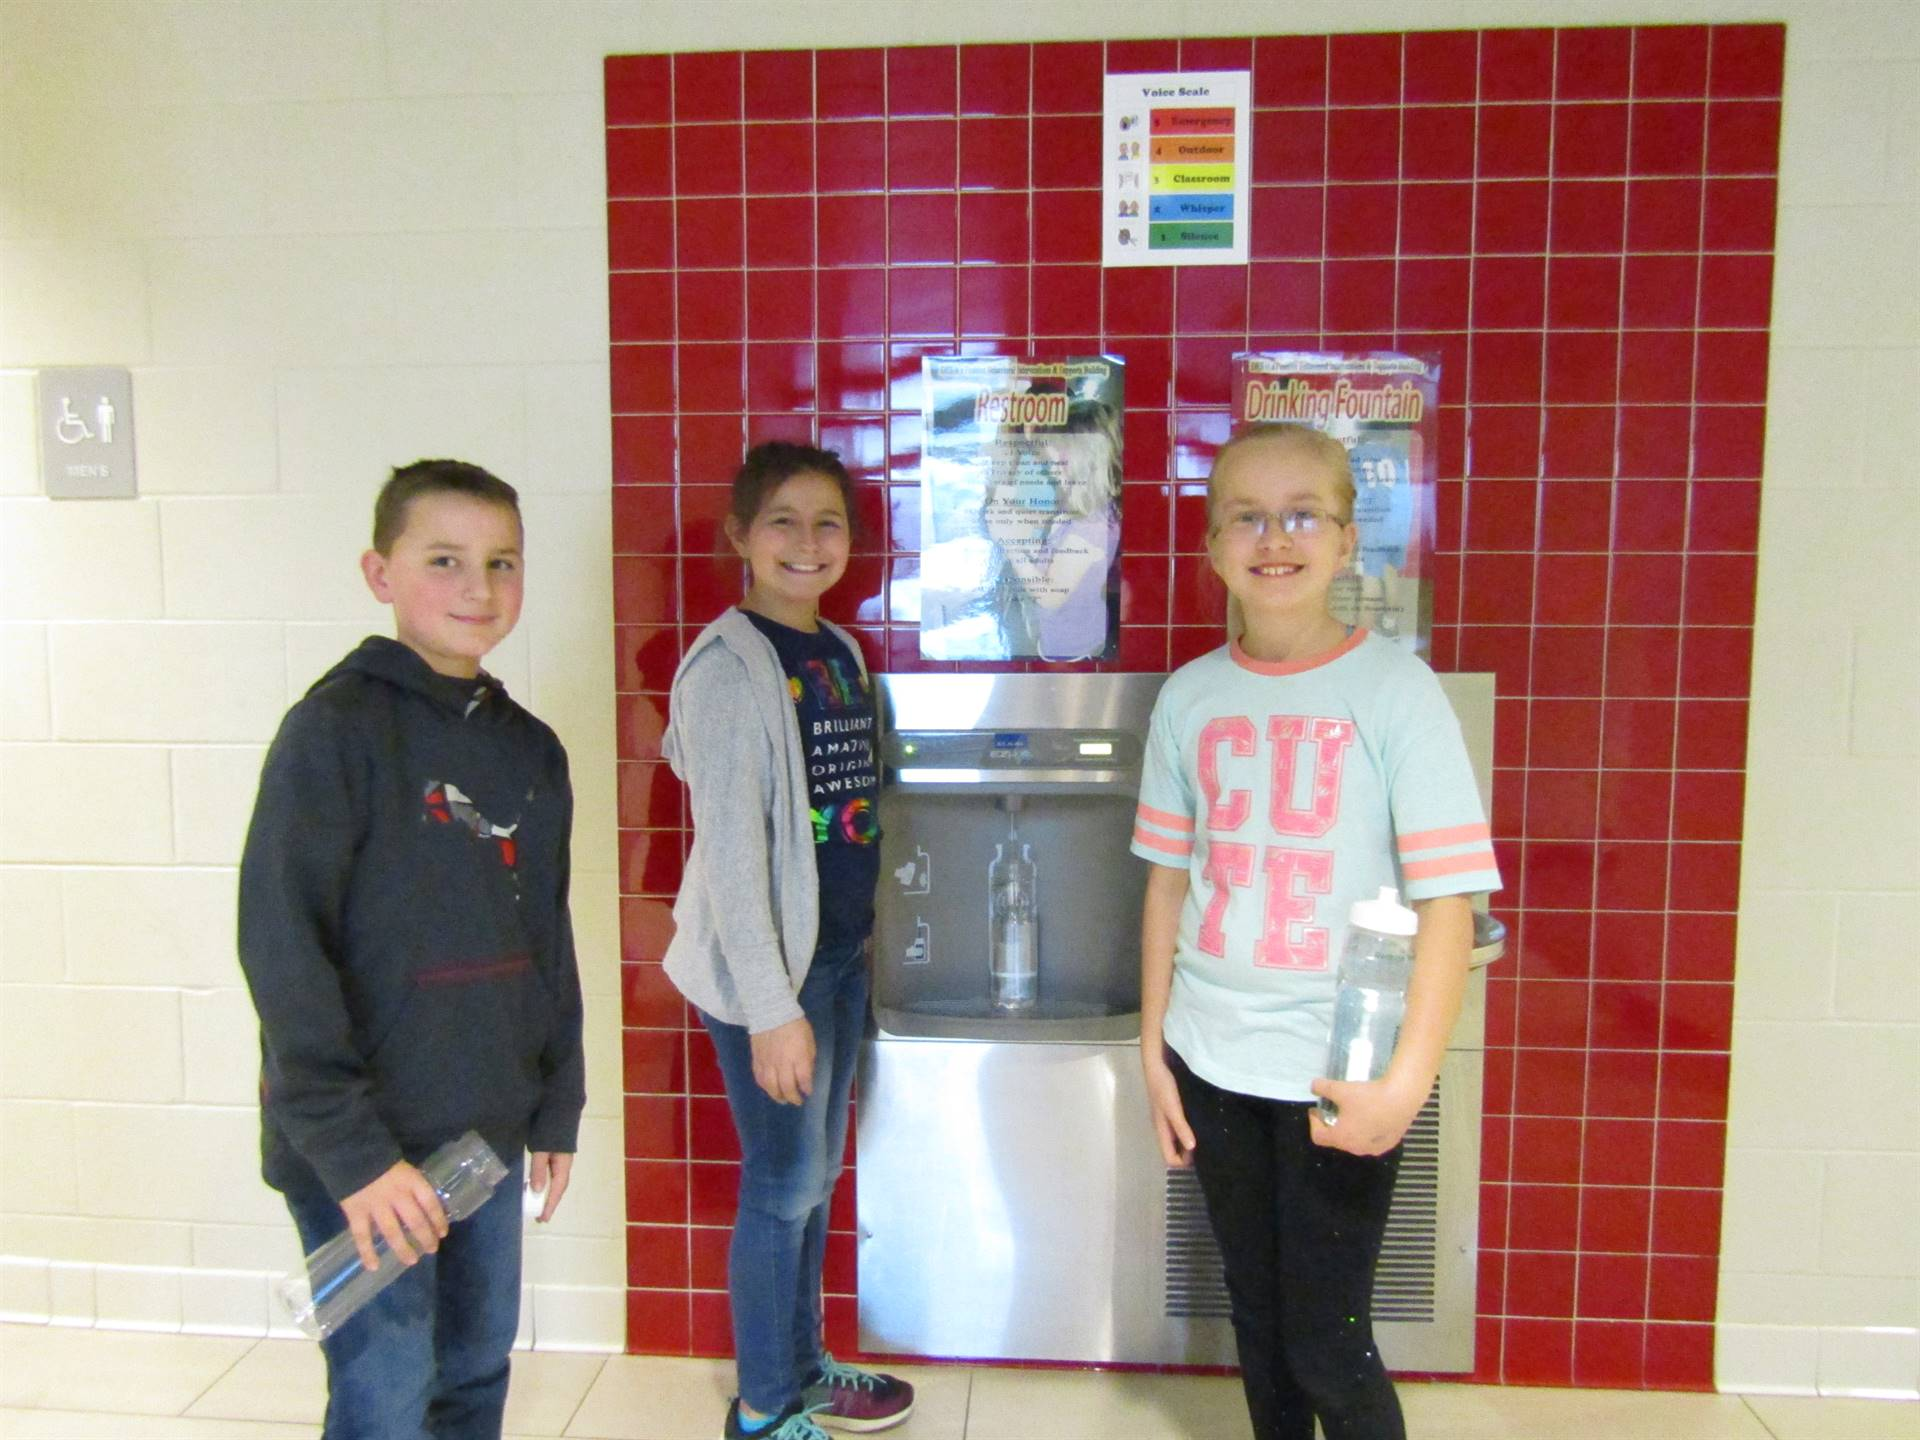 new water bottle filling station from the Rethink Your Drink program